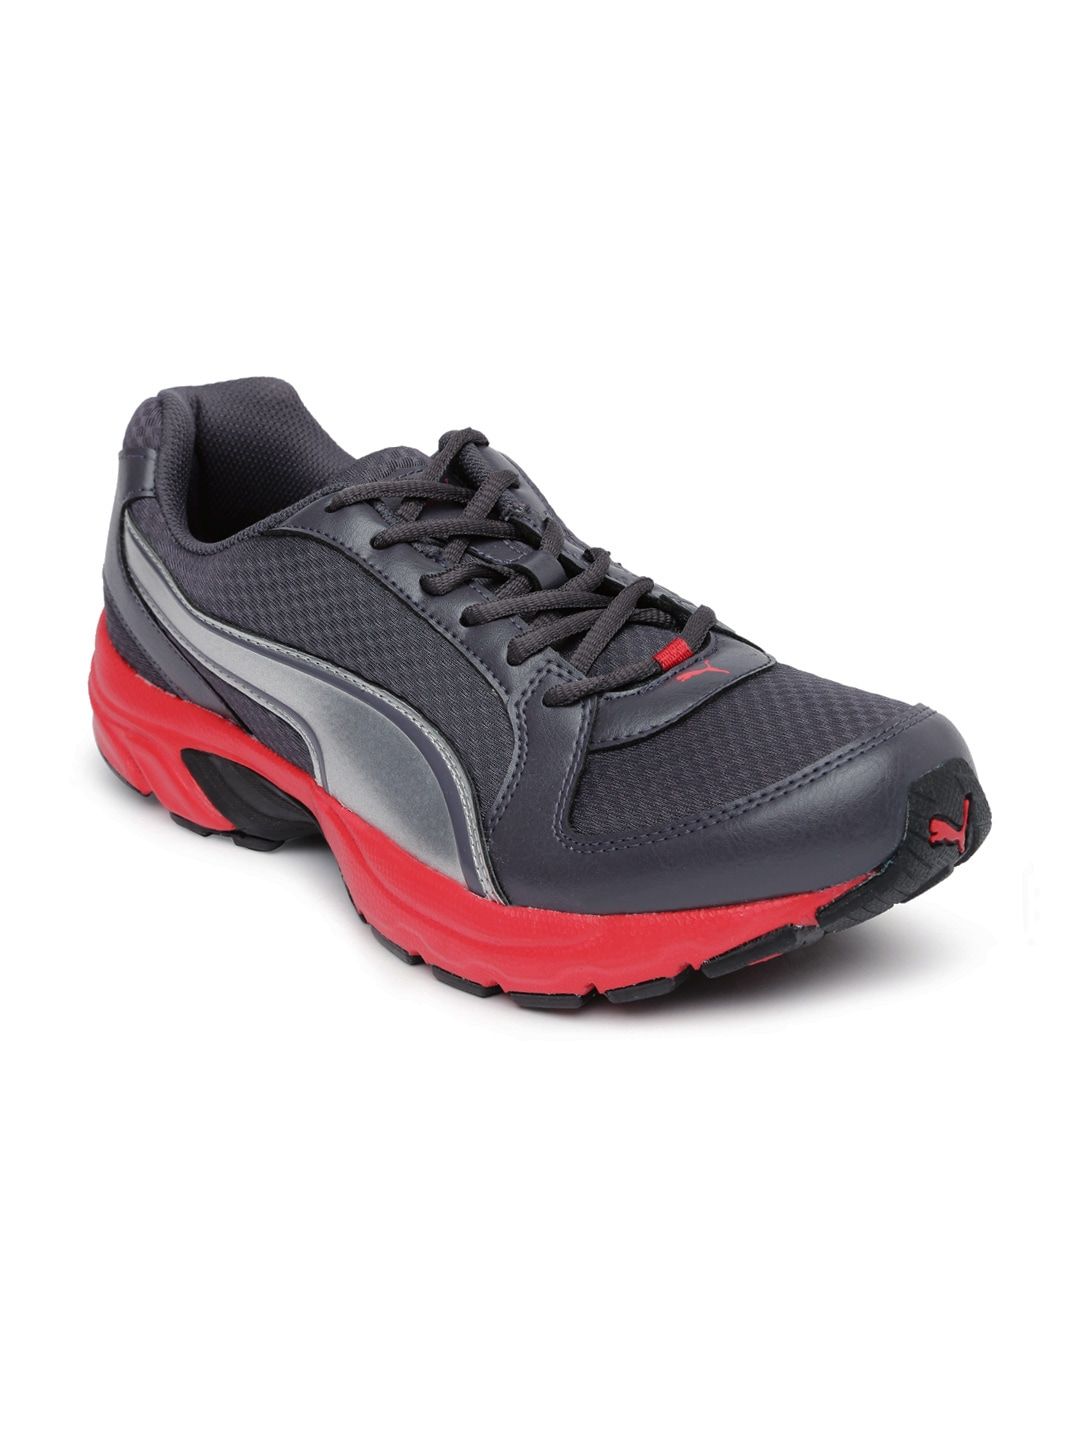 7db96d889d796e Puma 18936503 Unisex Grey Bolster Dp Running Shoes - Best Price ...